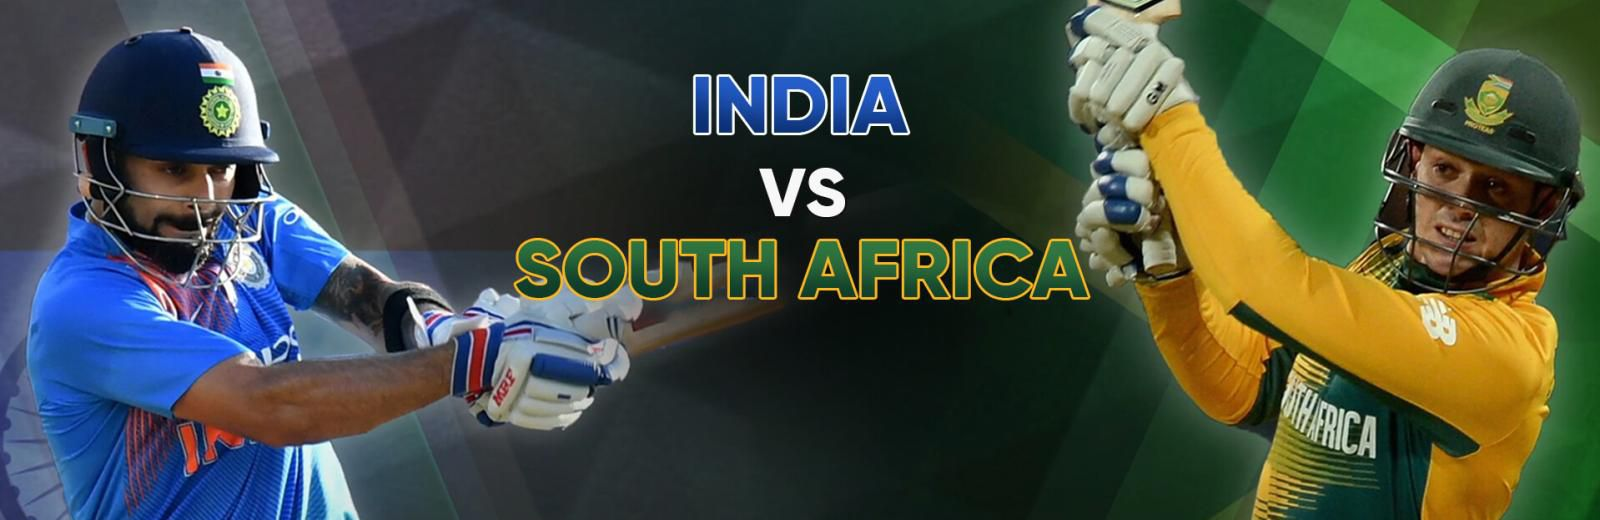 India v South Africa, T20I Series